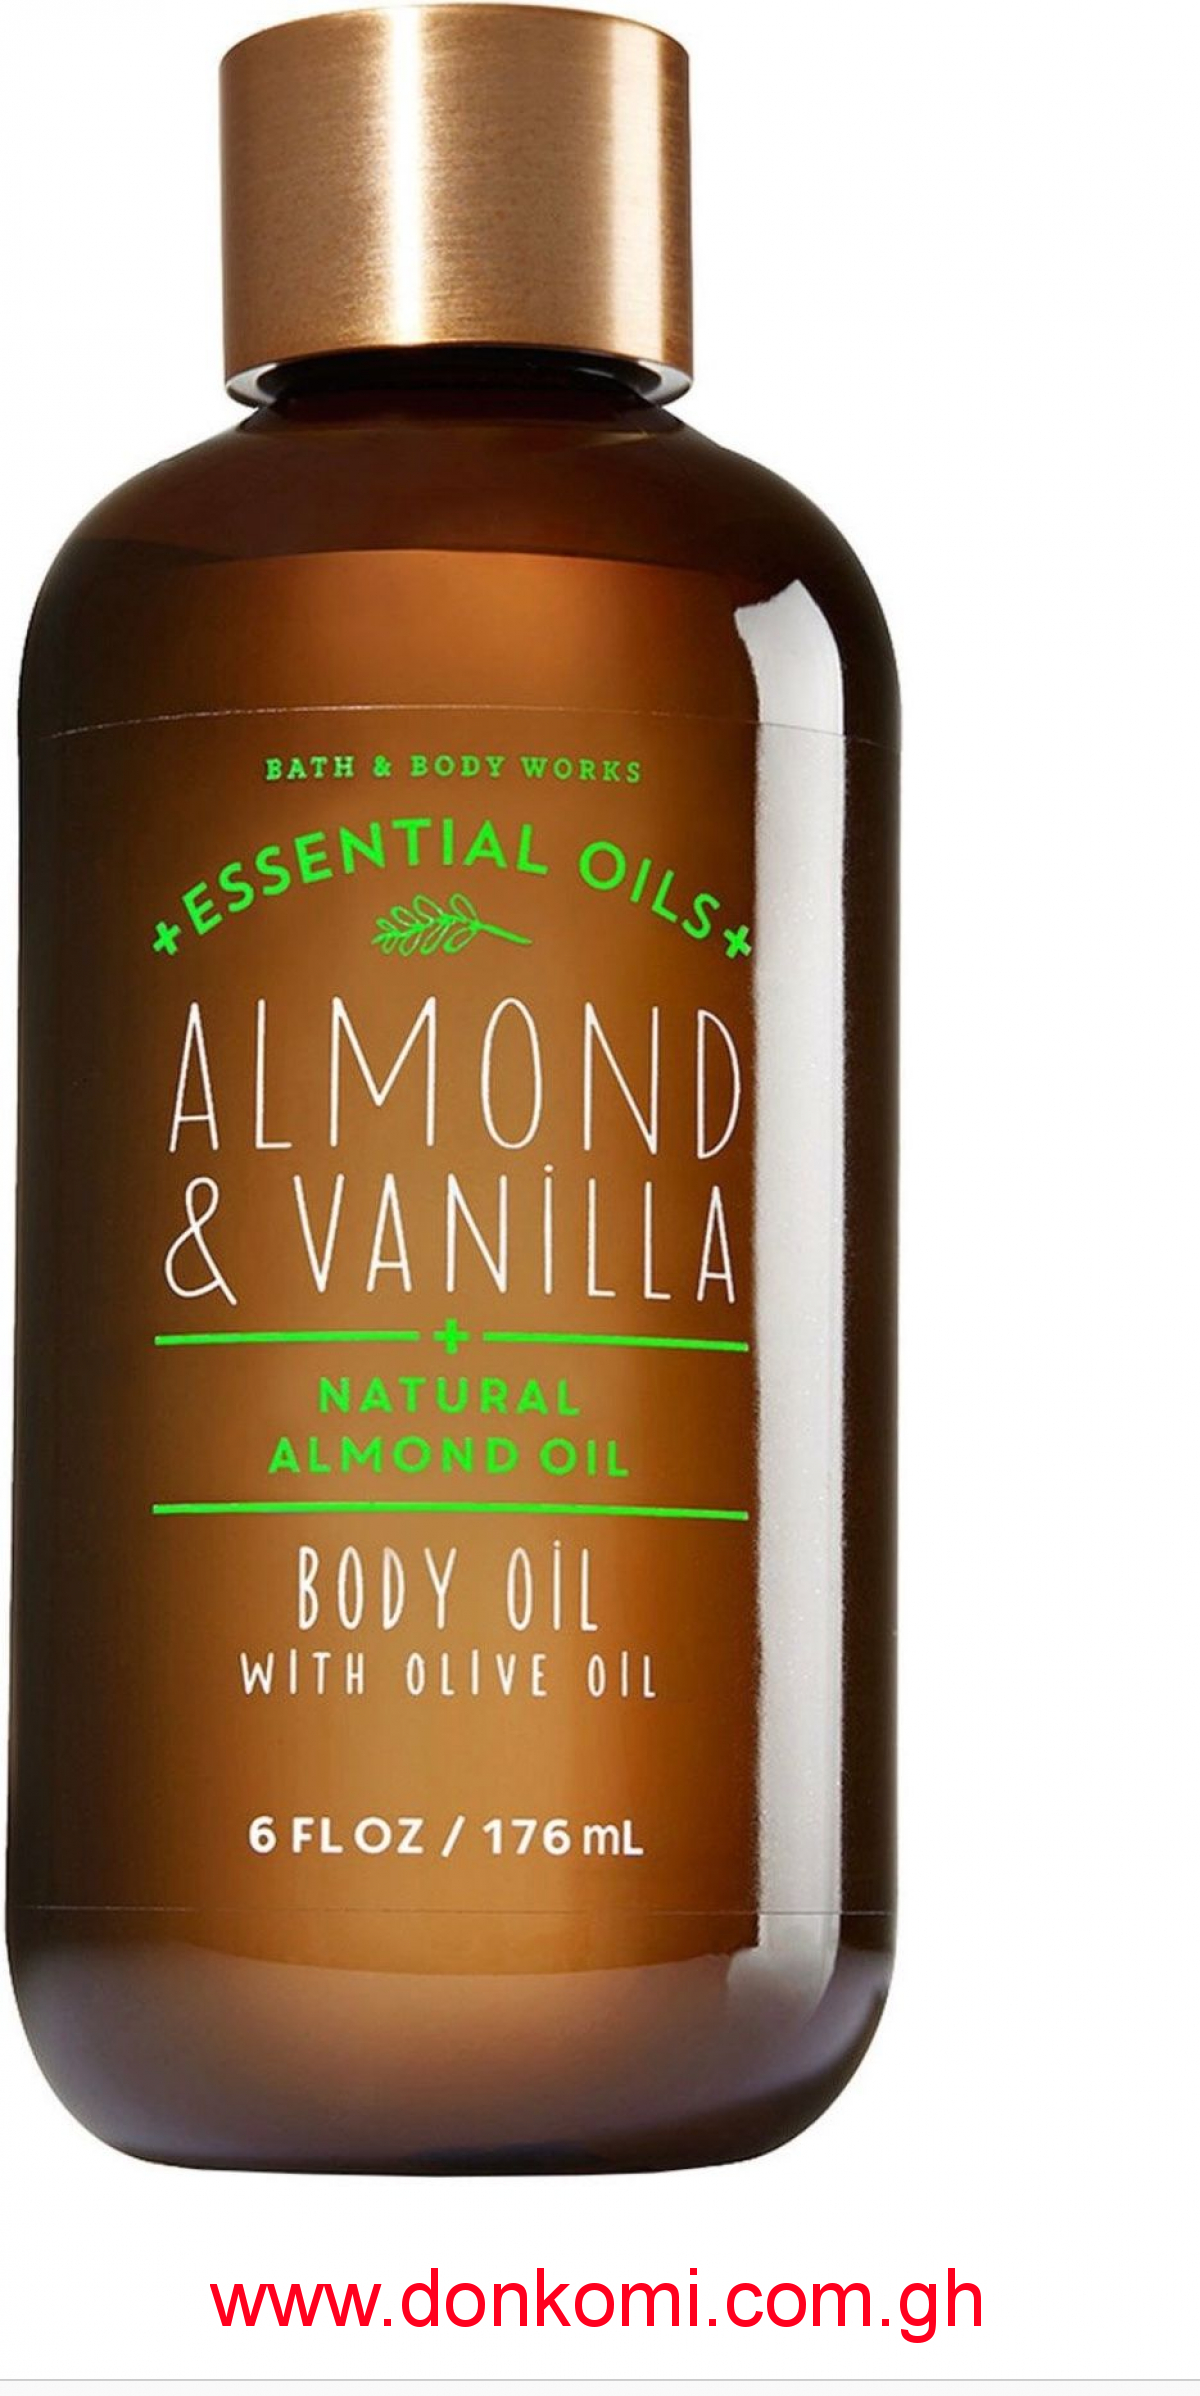 ALMOND & VANILLA BODY OIL